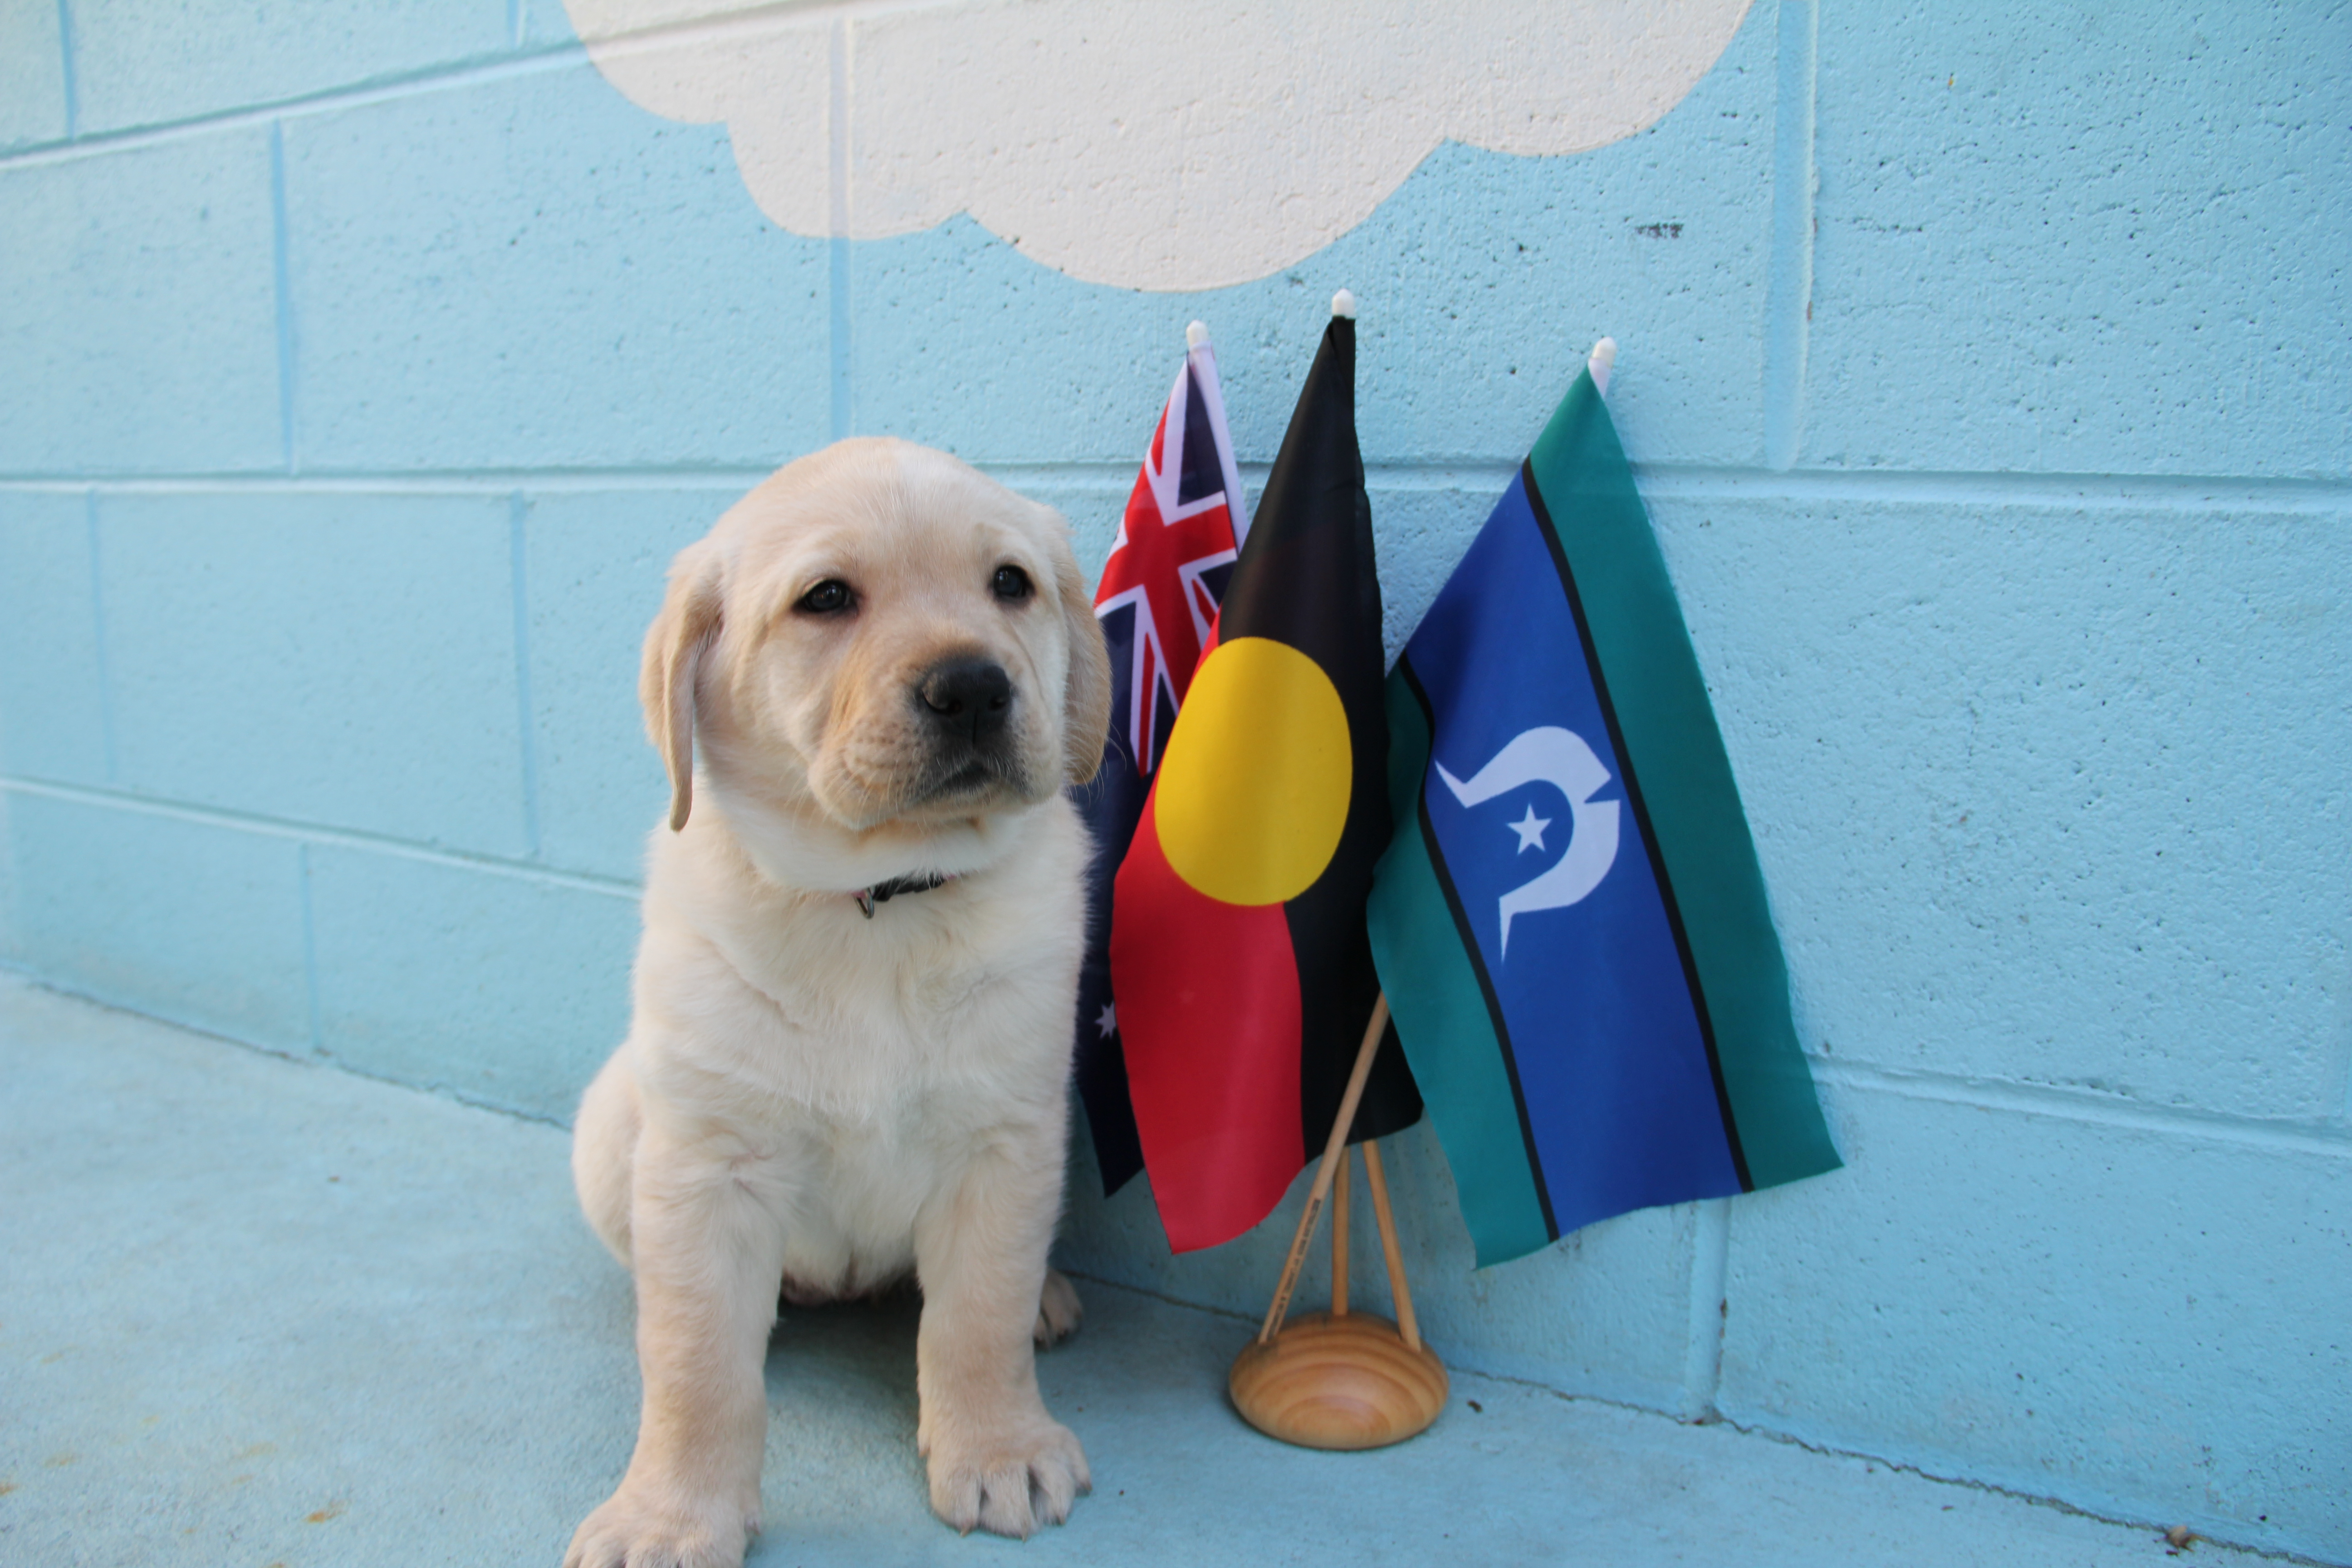 Nara, a golden Labrador puppy named by Alan for NAIDOC Week, sits next to miniature Australian, Aboriginal and Torres Strait Islander flags.